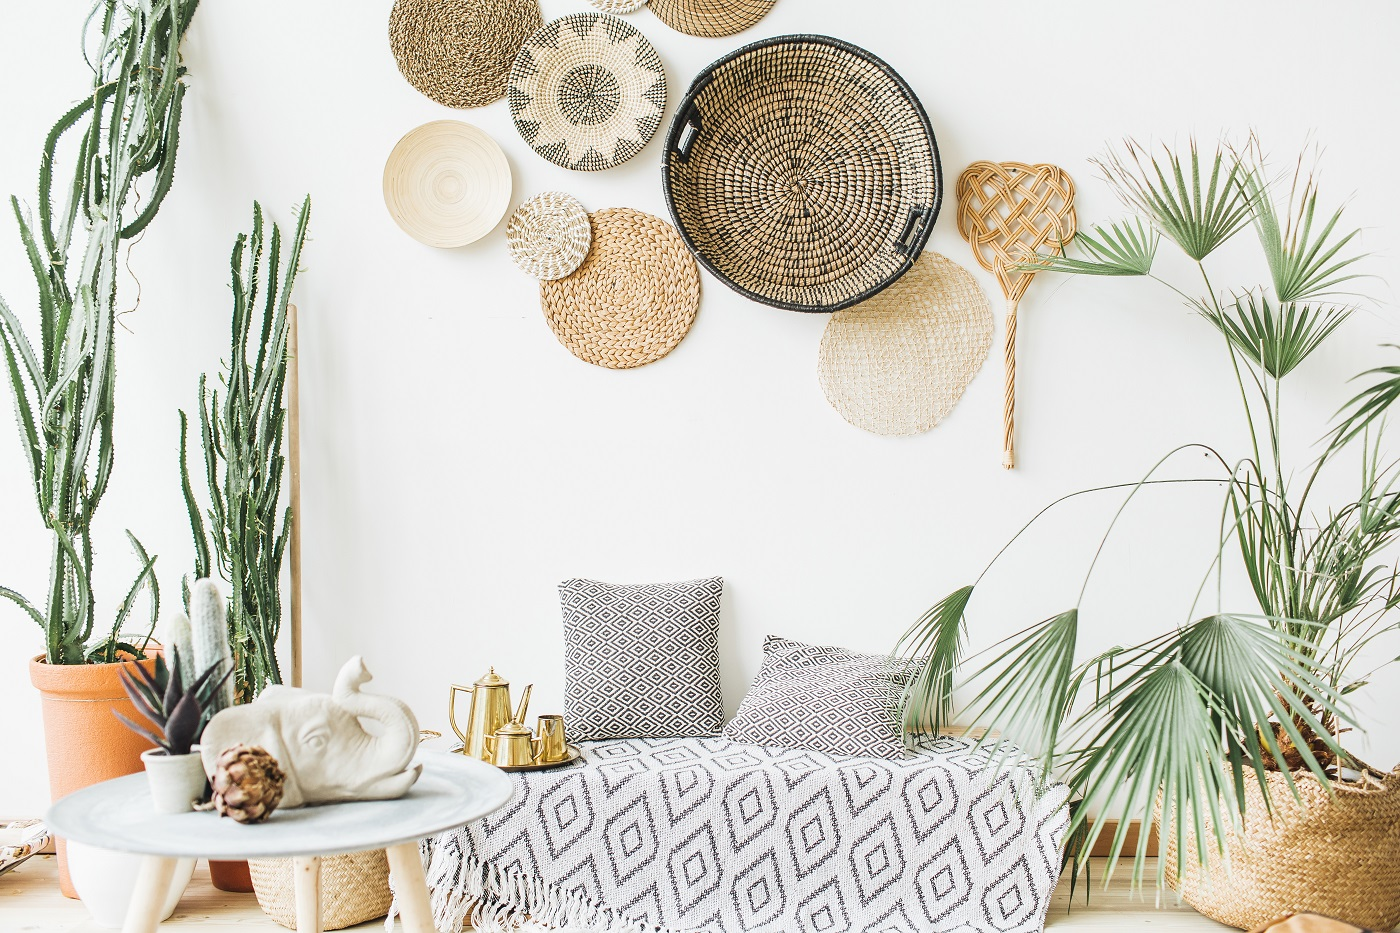 Need Decoration Inspiration For Your Home? Here Are the 10 Best Pinterest and Instagram Accounts to Follow